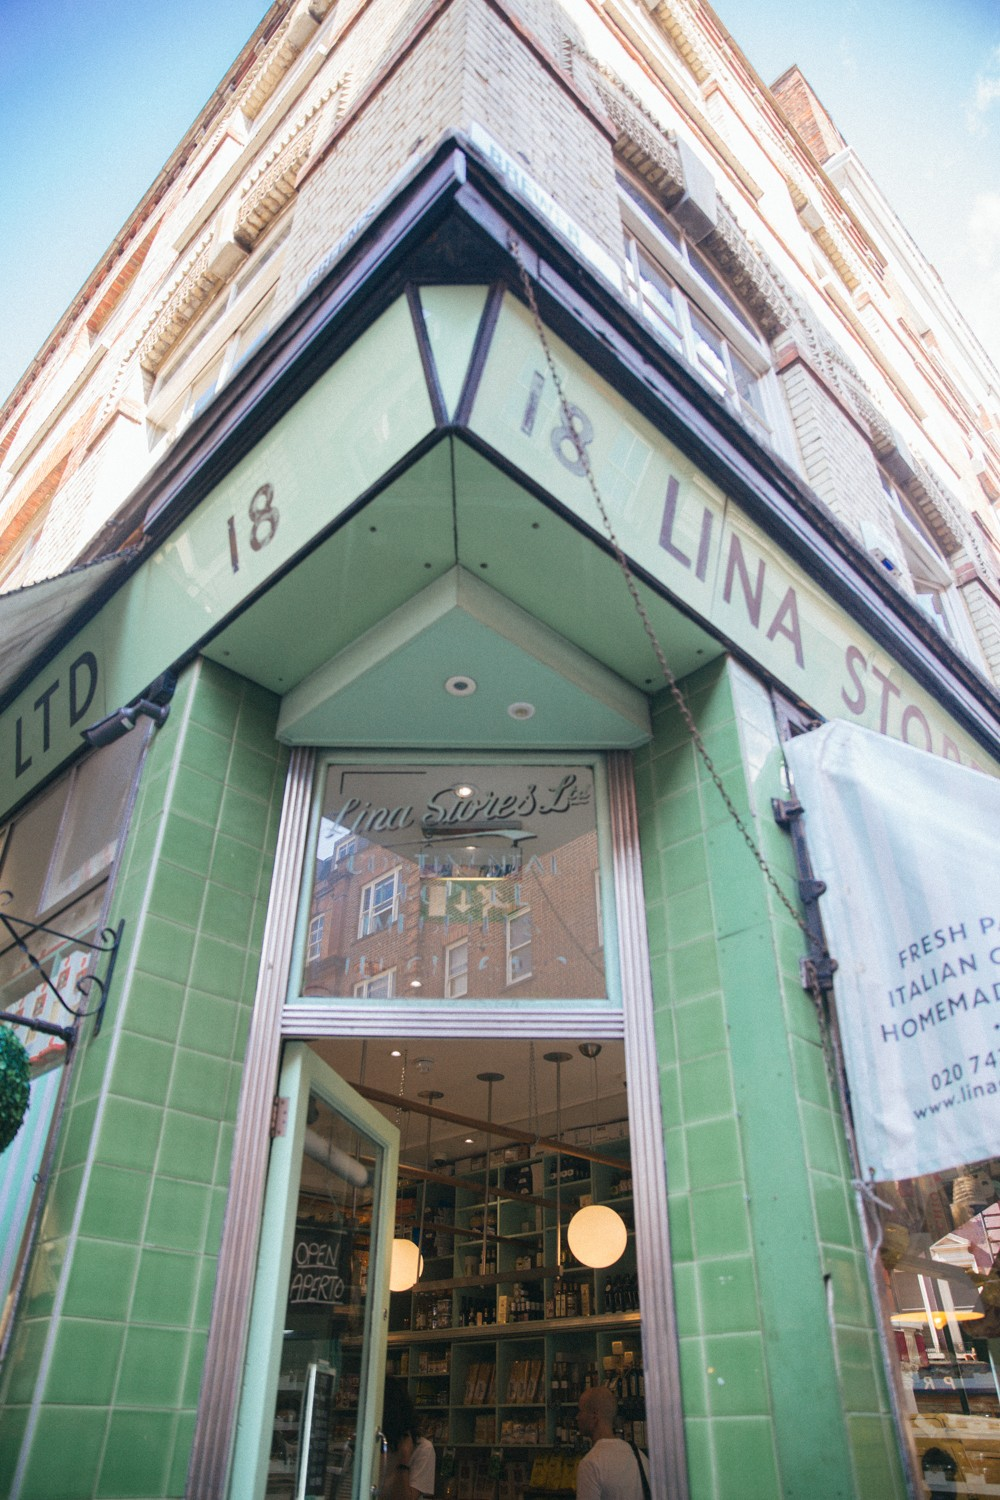 Lina Stores in Soho, London